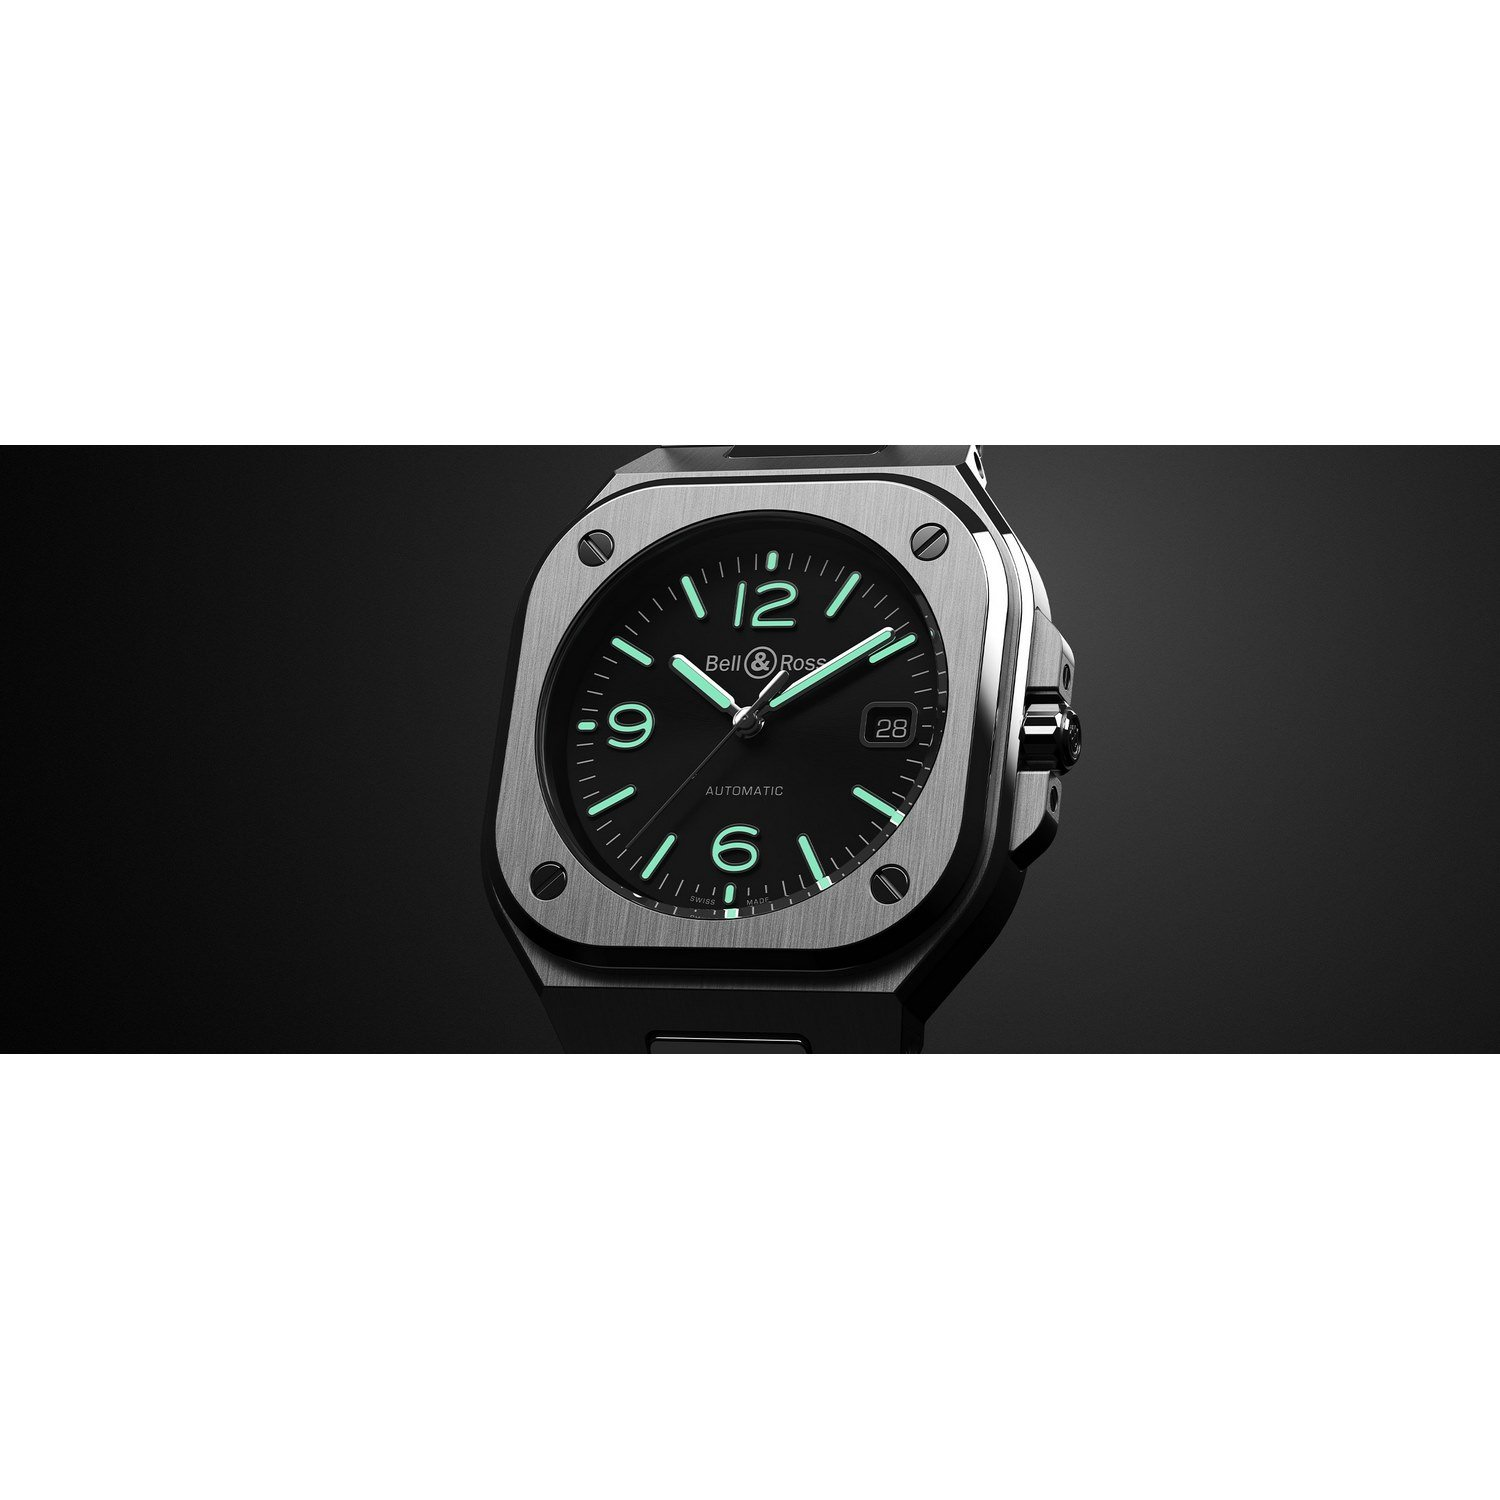 Montre Bell & Ross BR 05 Black Steel vue 6